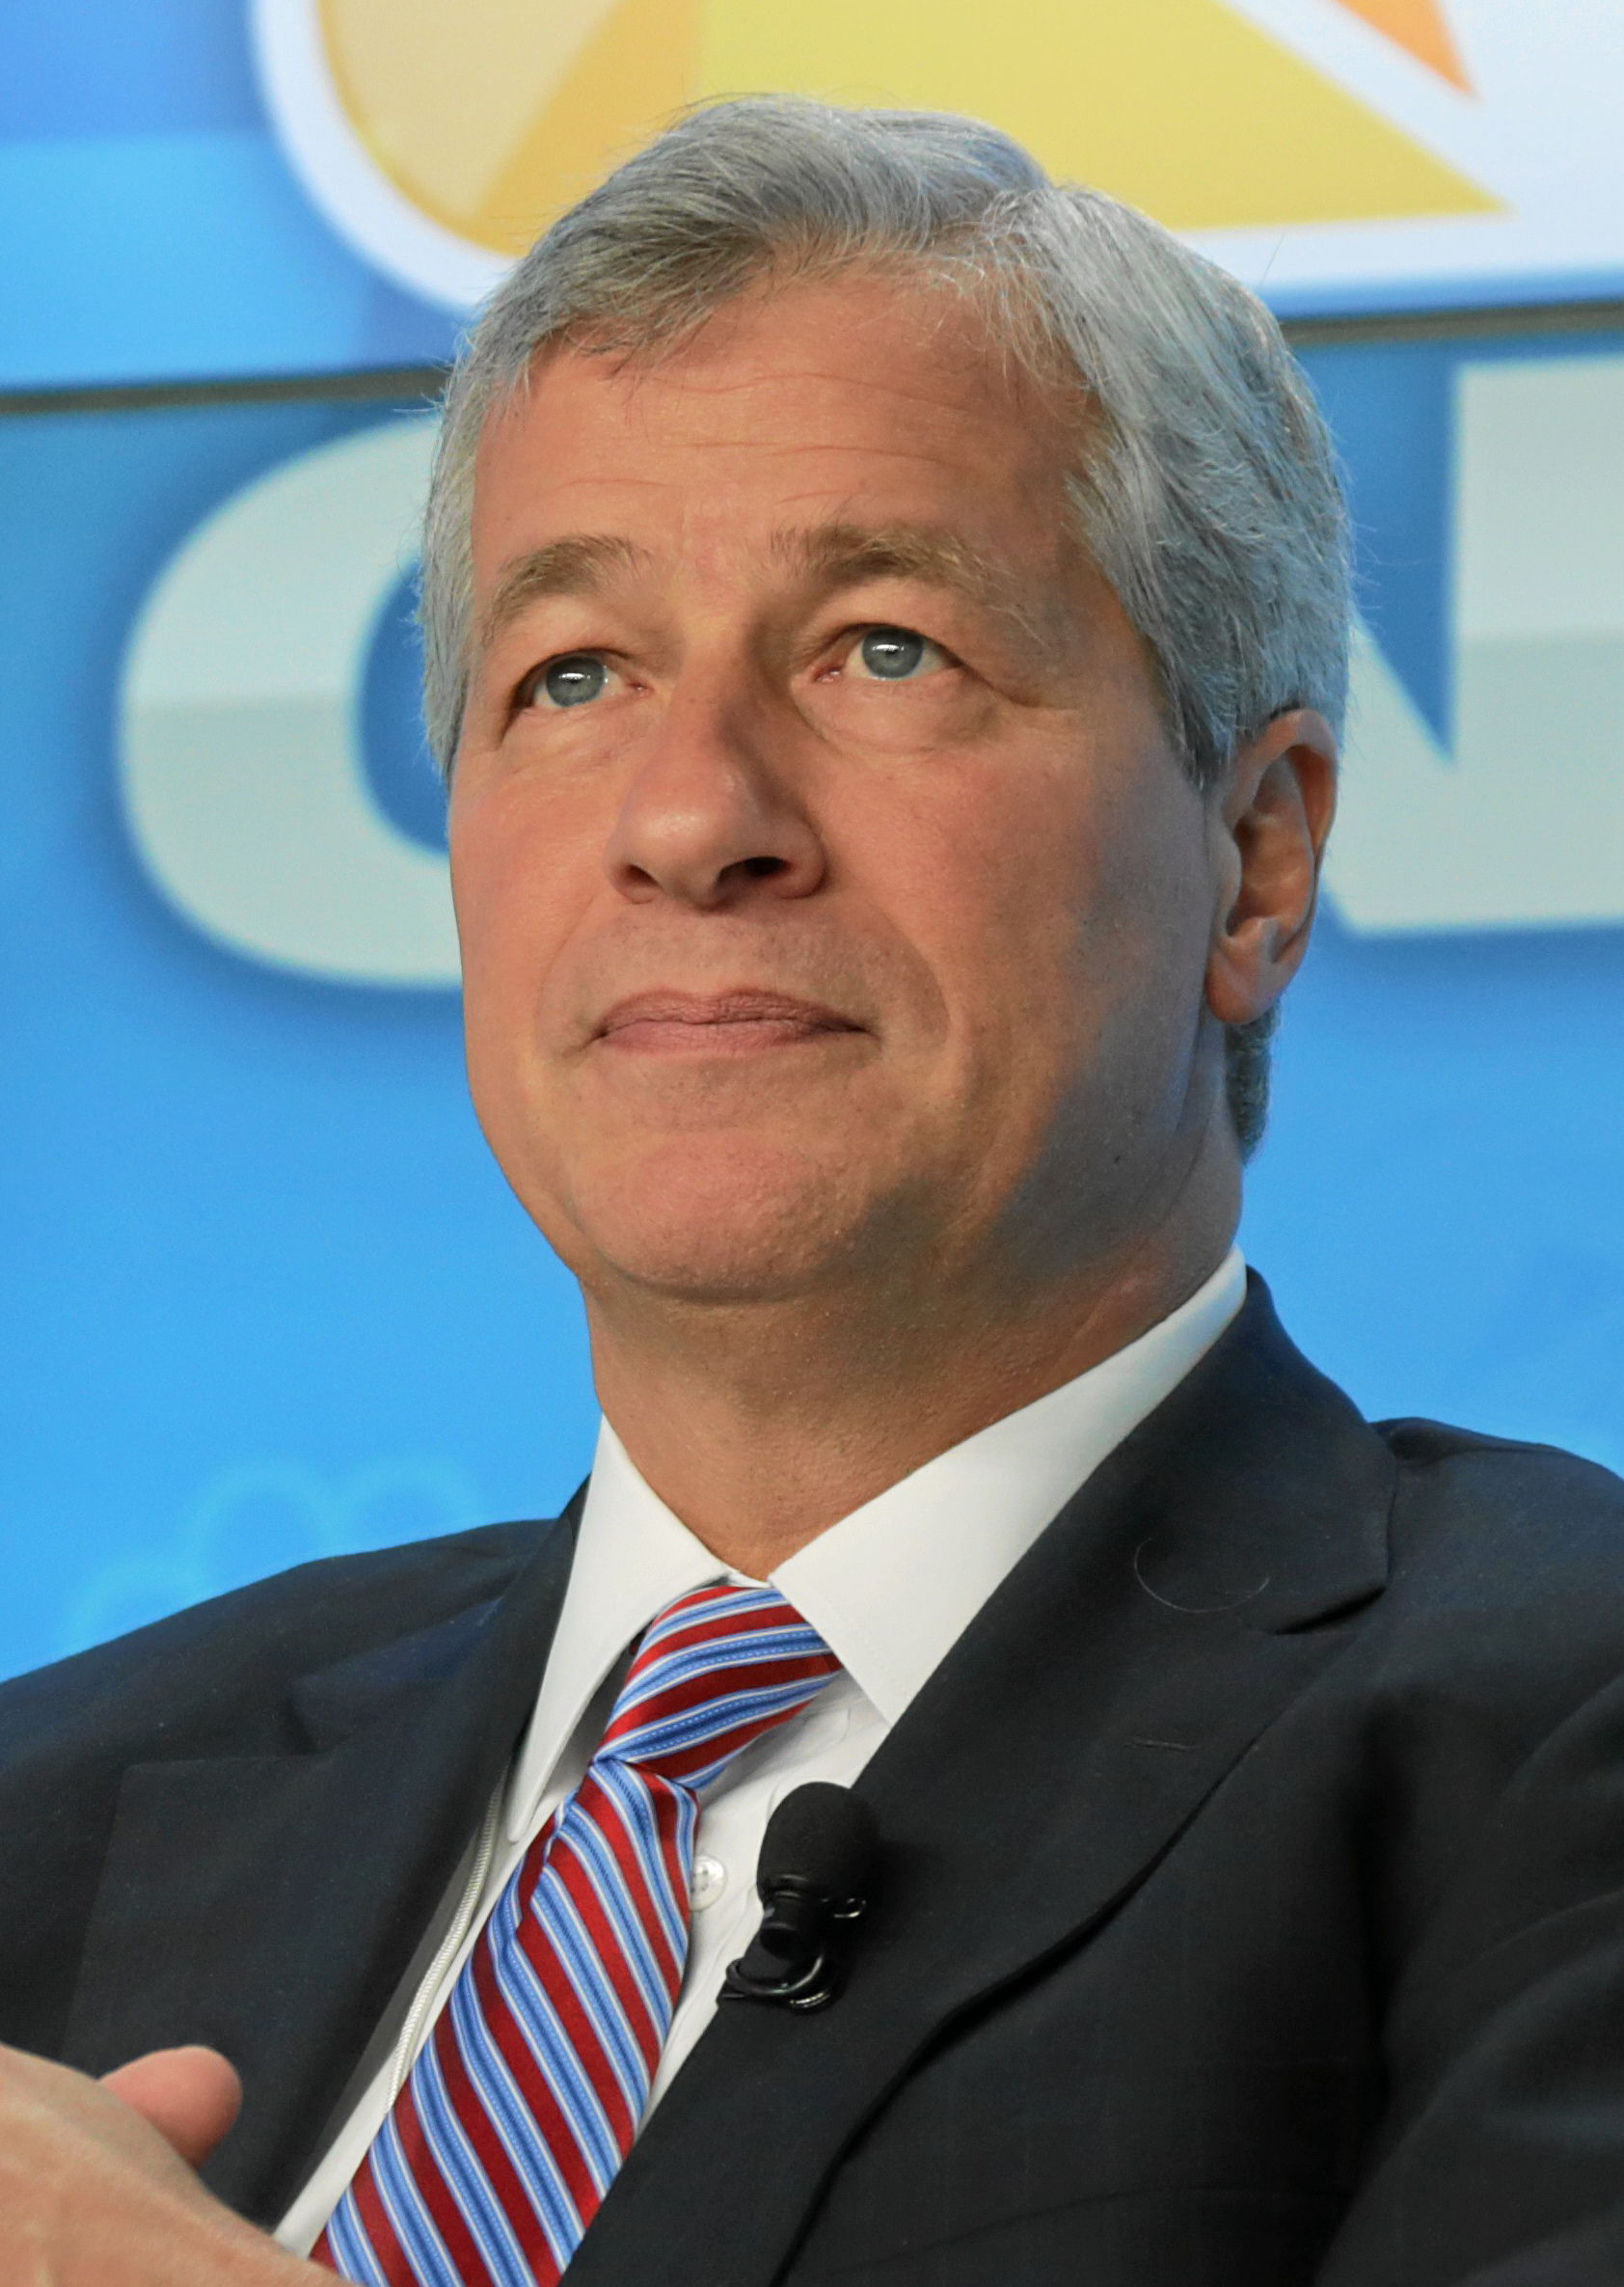 Jamie Dimon - Wikipedia